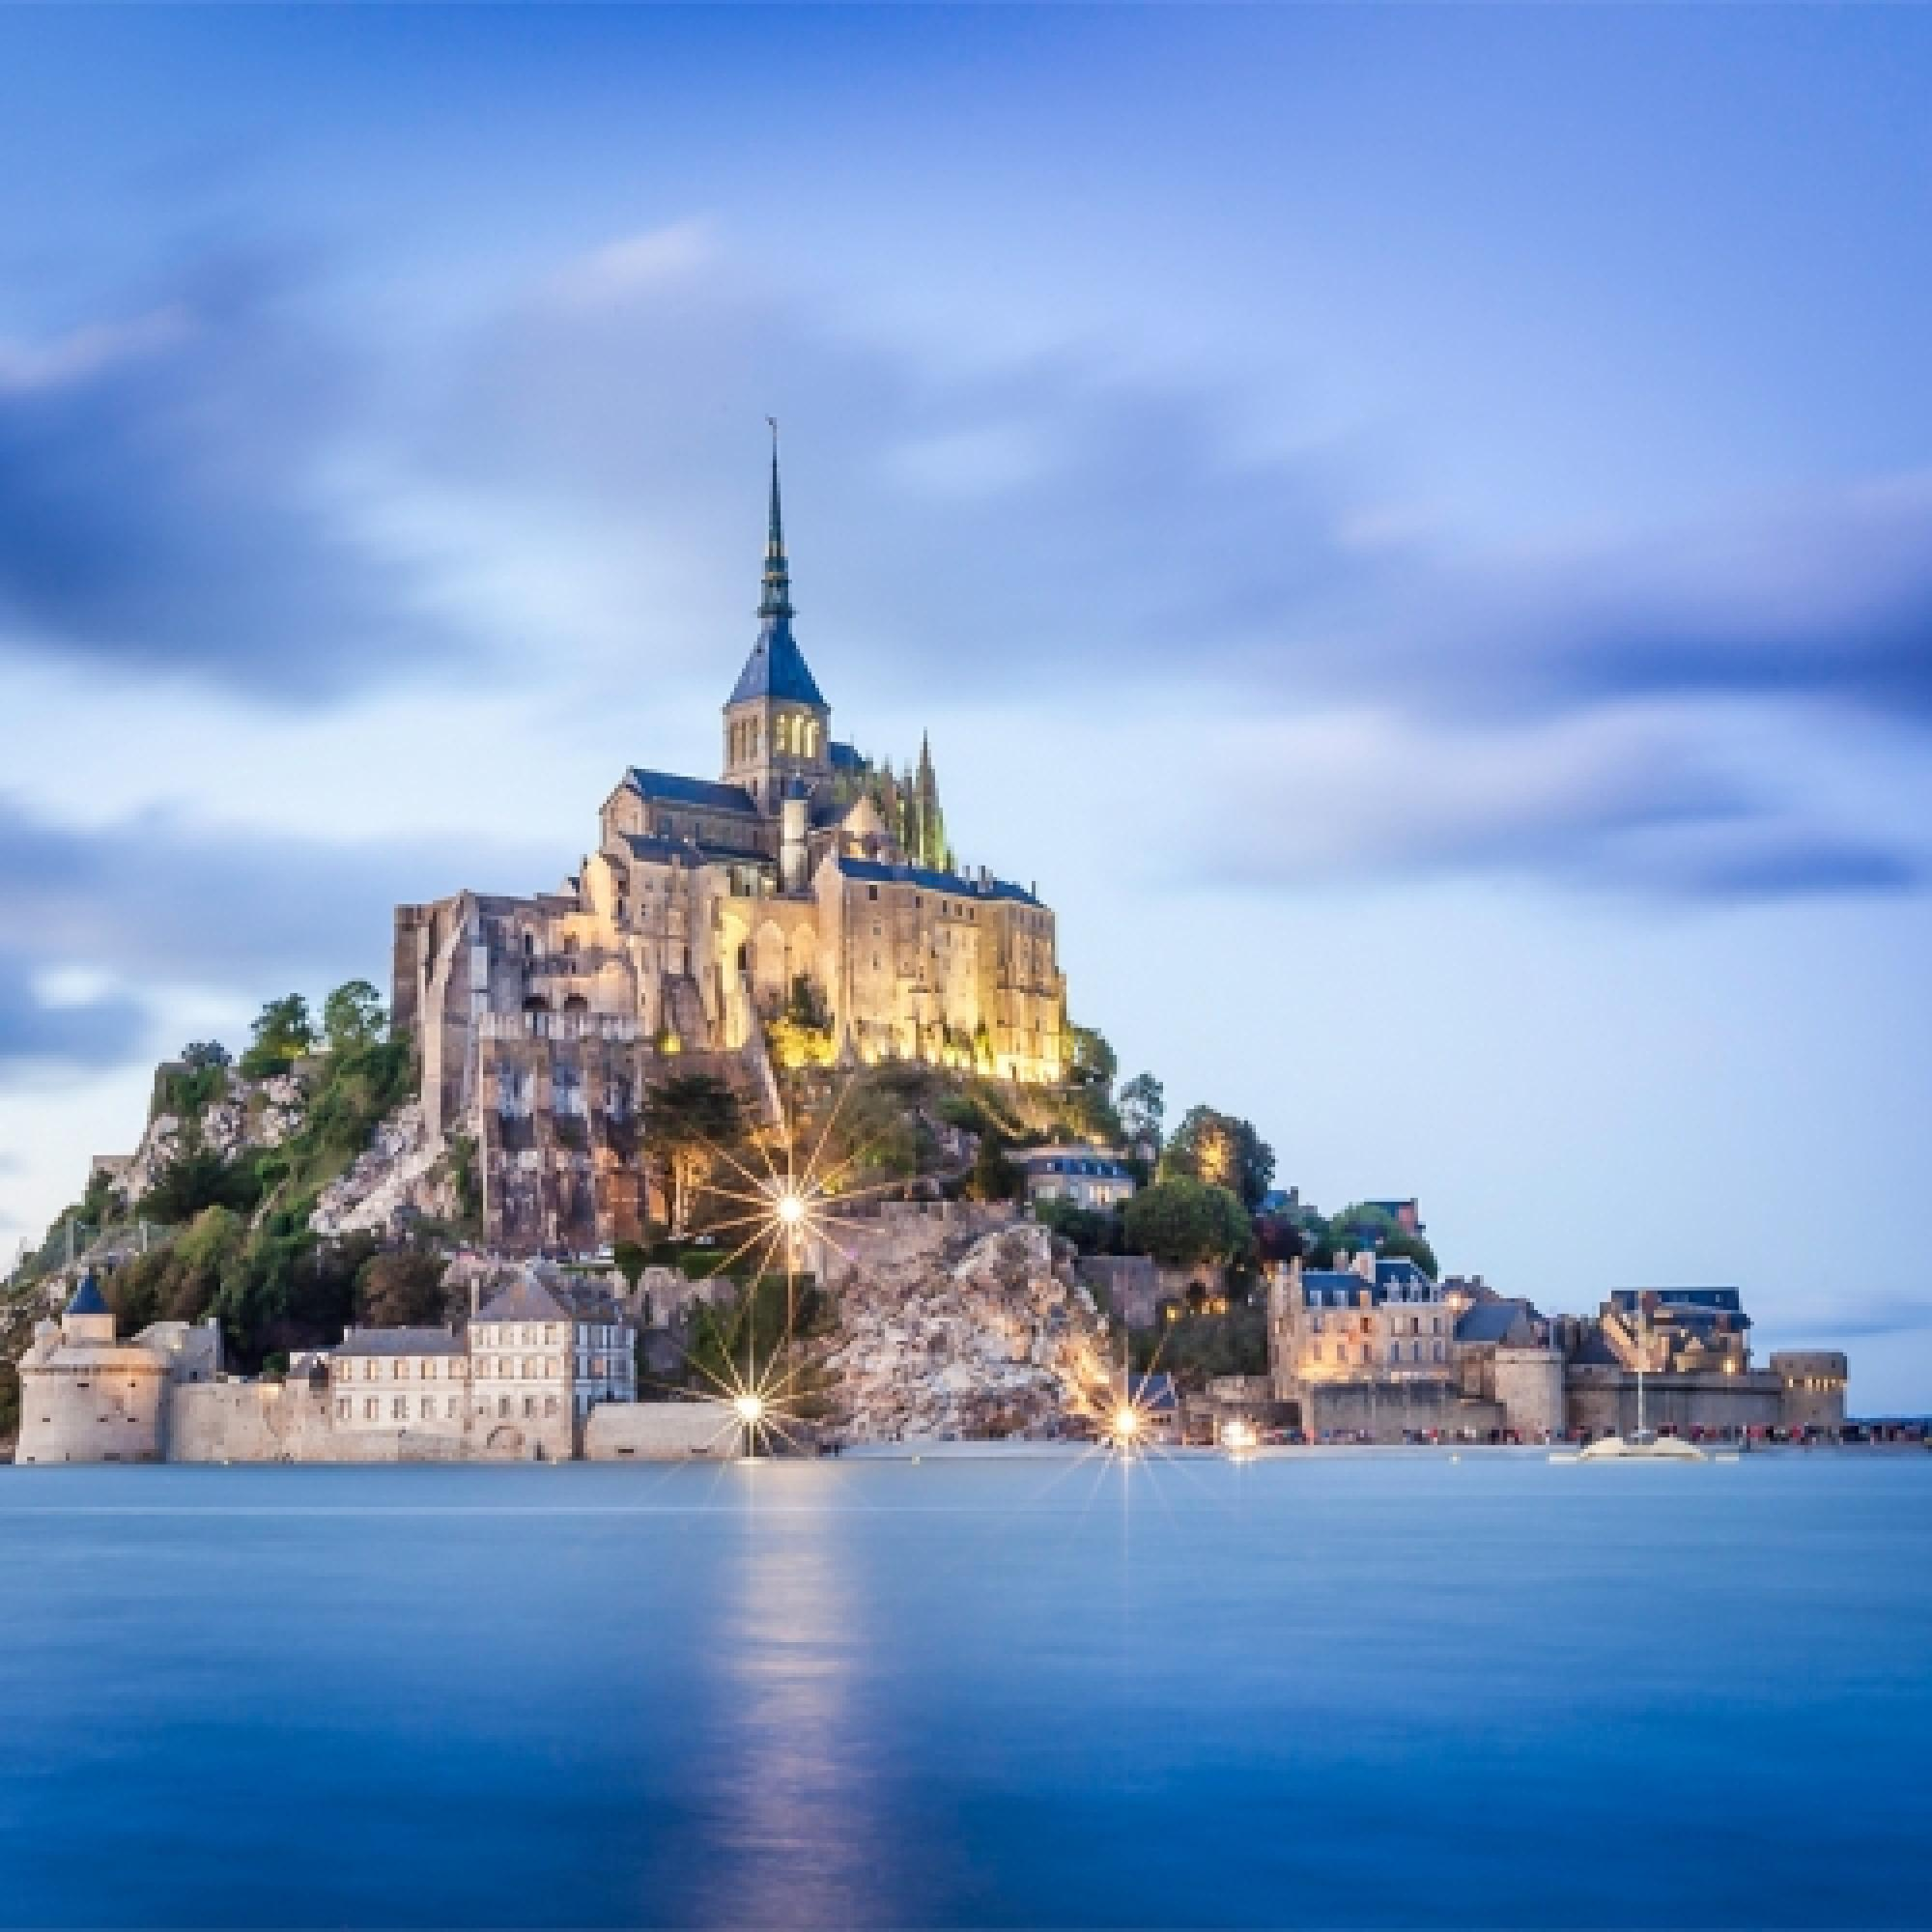 Discover Normandy - Vacation package : France, The Grand Tour  - Land of France, travel agency in France